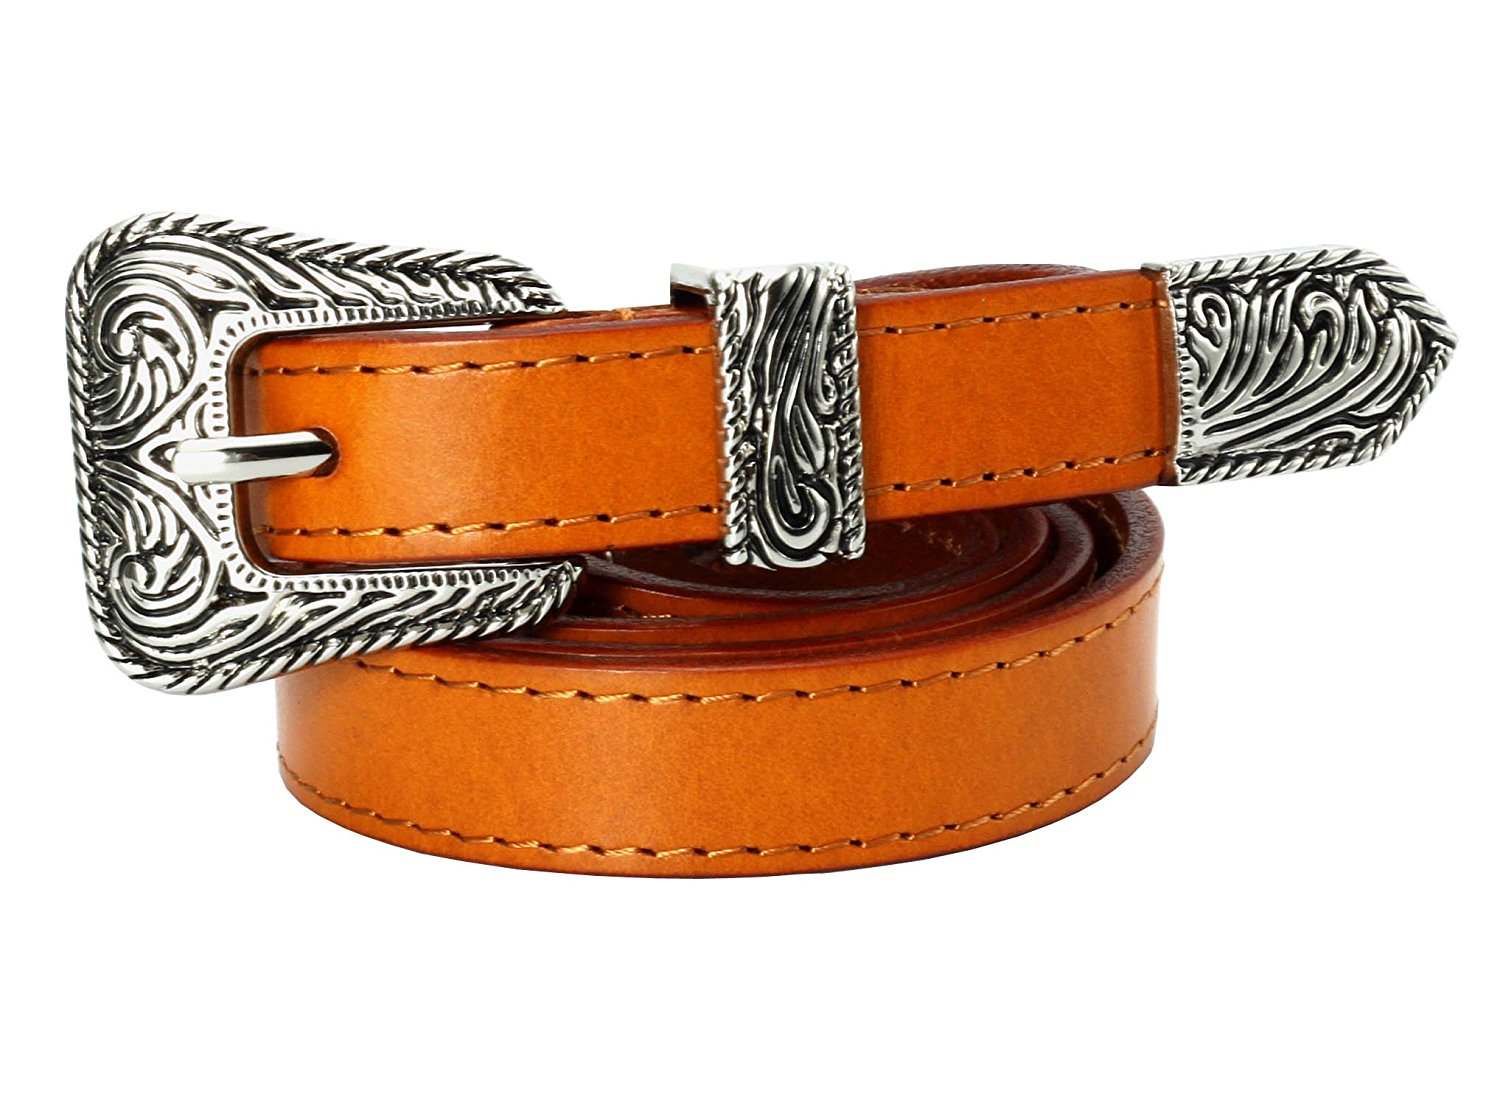 Aecibzo Mens Genuine Cowhide Leather Ratchet Dress Belt with Automatic Buckle